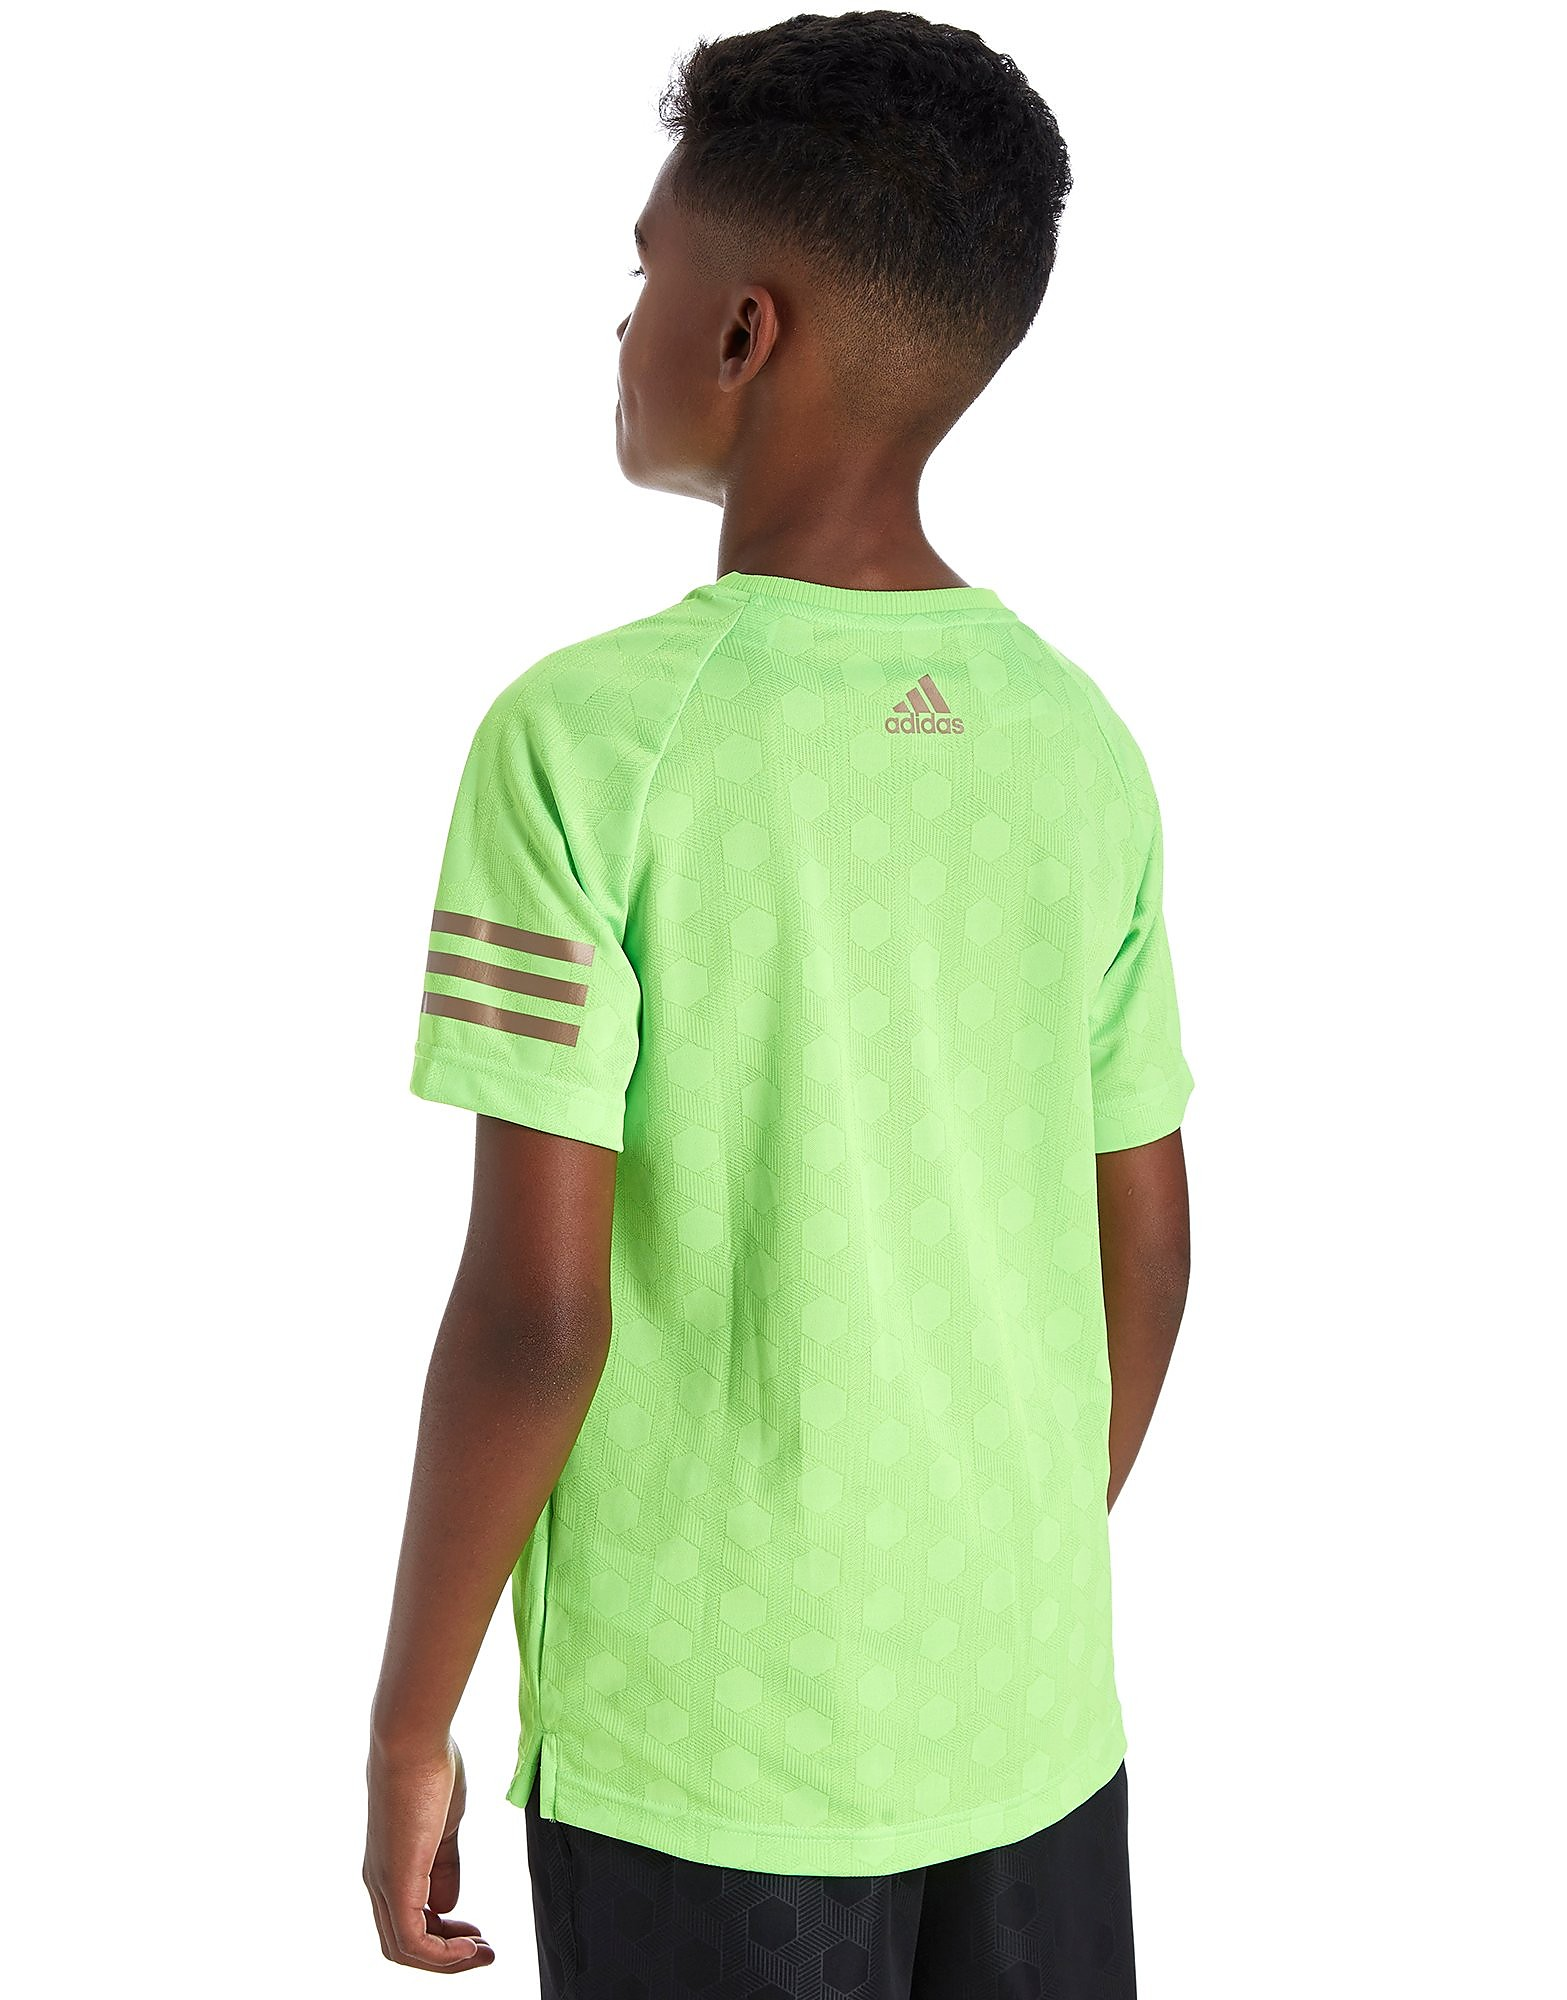 adidas Messi T-Shirt Junior